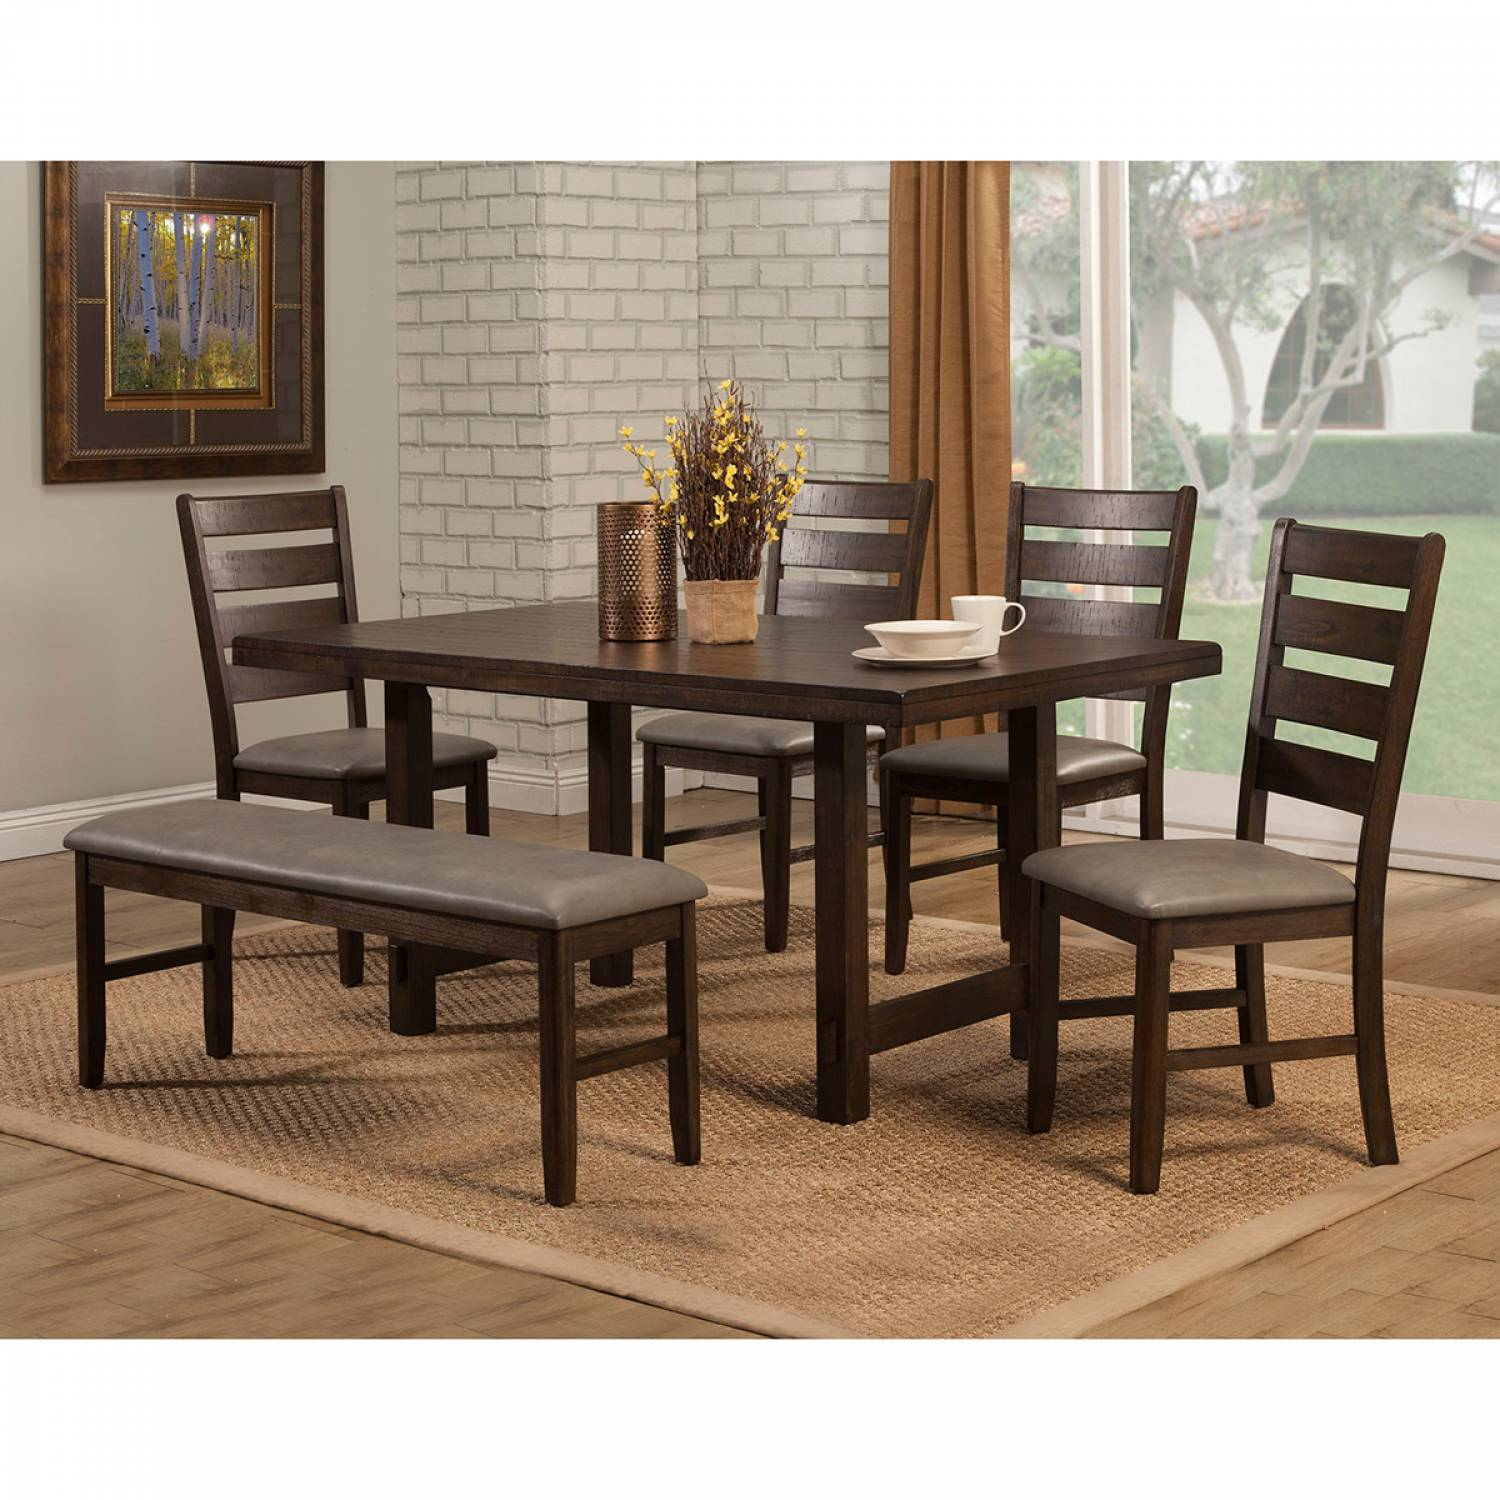 2929 Alpine Furniture 2929-01 Emery 6PC SETS Dining Table + 4 ... on granite dining table with bench, kitchen bench style tables, pub table with bench, kitchen dinette sets, kitchen table bench booth, kitchen table set rustic, kitchen bench set furniture, kitchen chairs with bench, small dining table with bench, kitchen table plans, kitchen bench table seat set, oval table set with bench, kitchen corner bench, drop leaf table with bench, kitchen table and chairs sets,